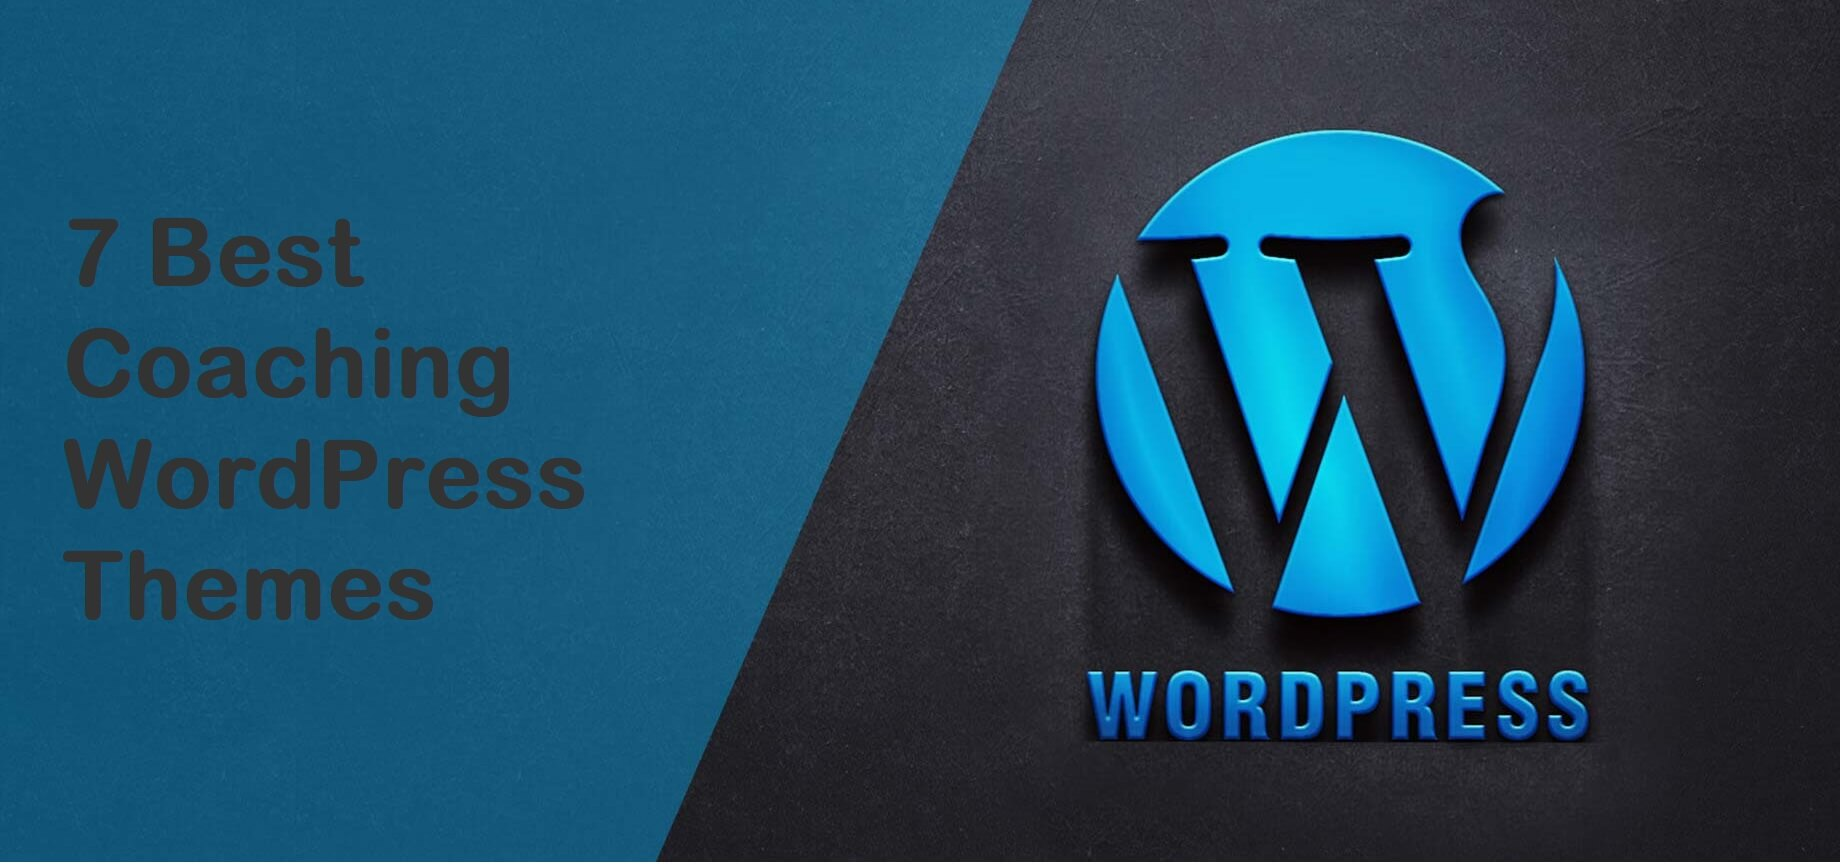 7 Best Coaching WordPress Themes